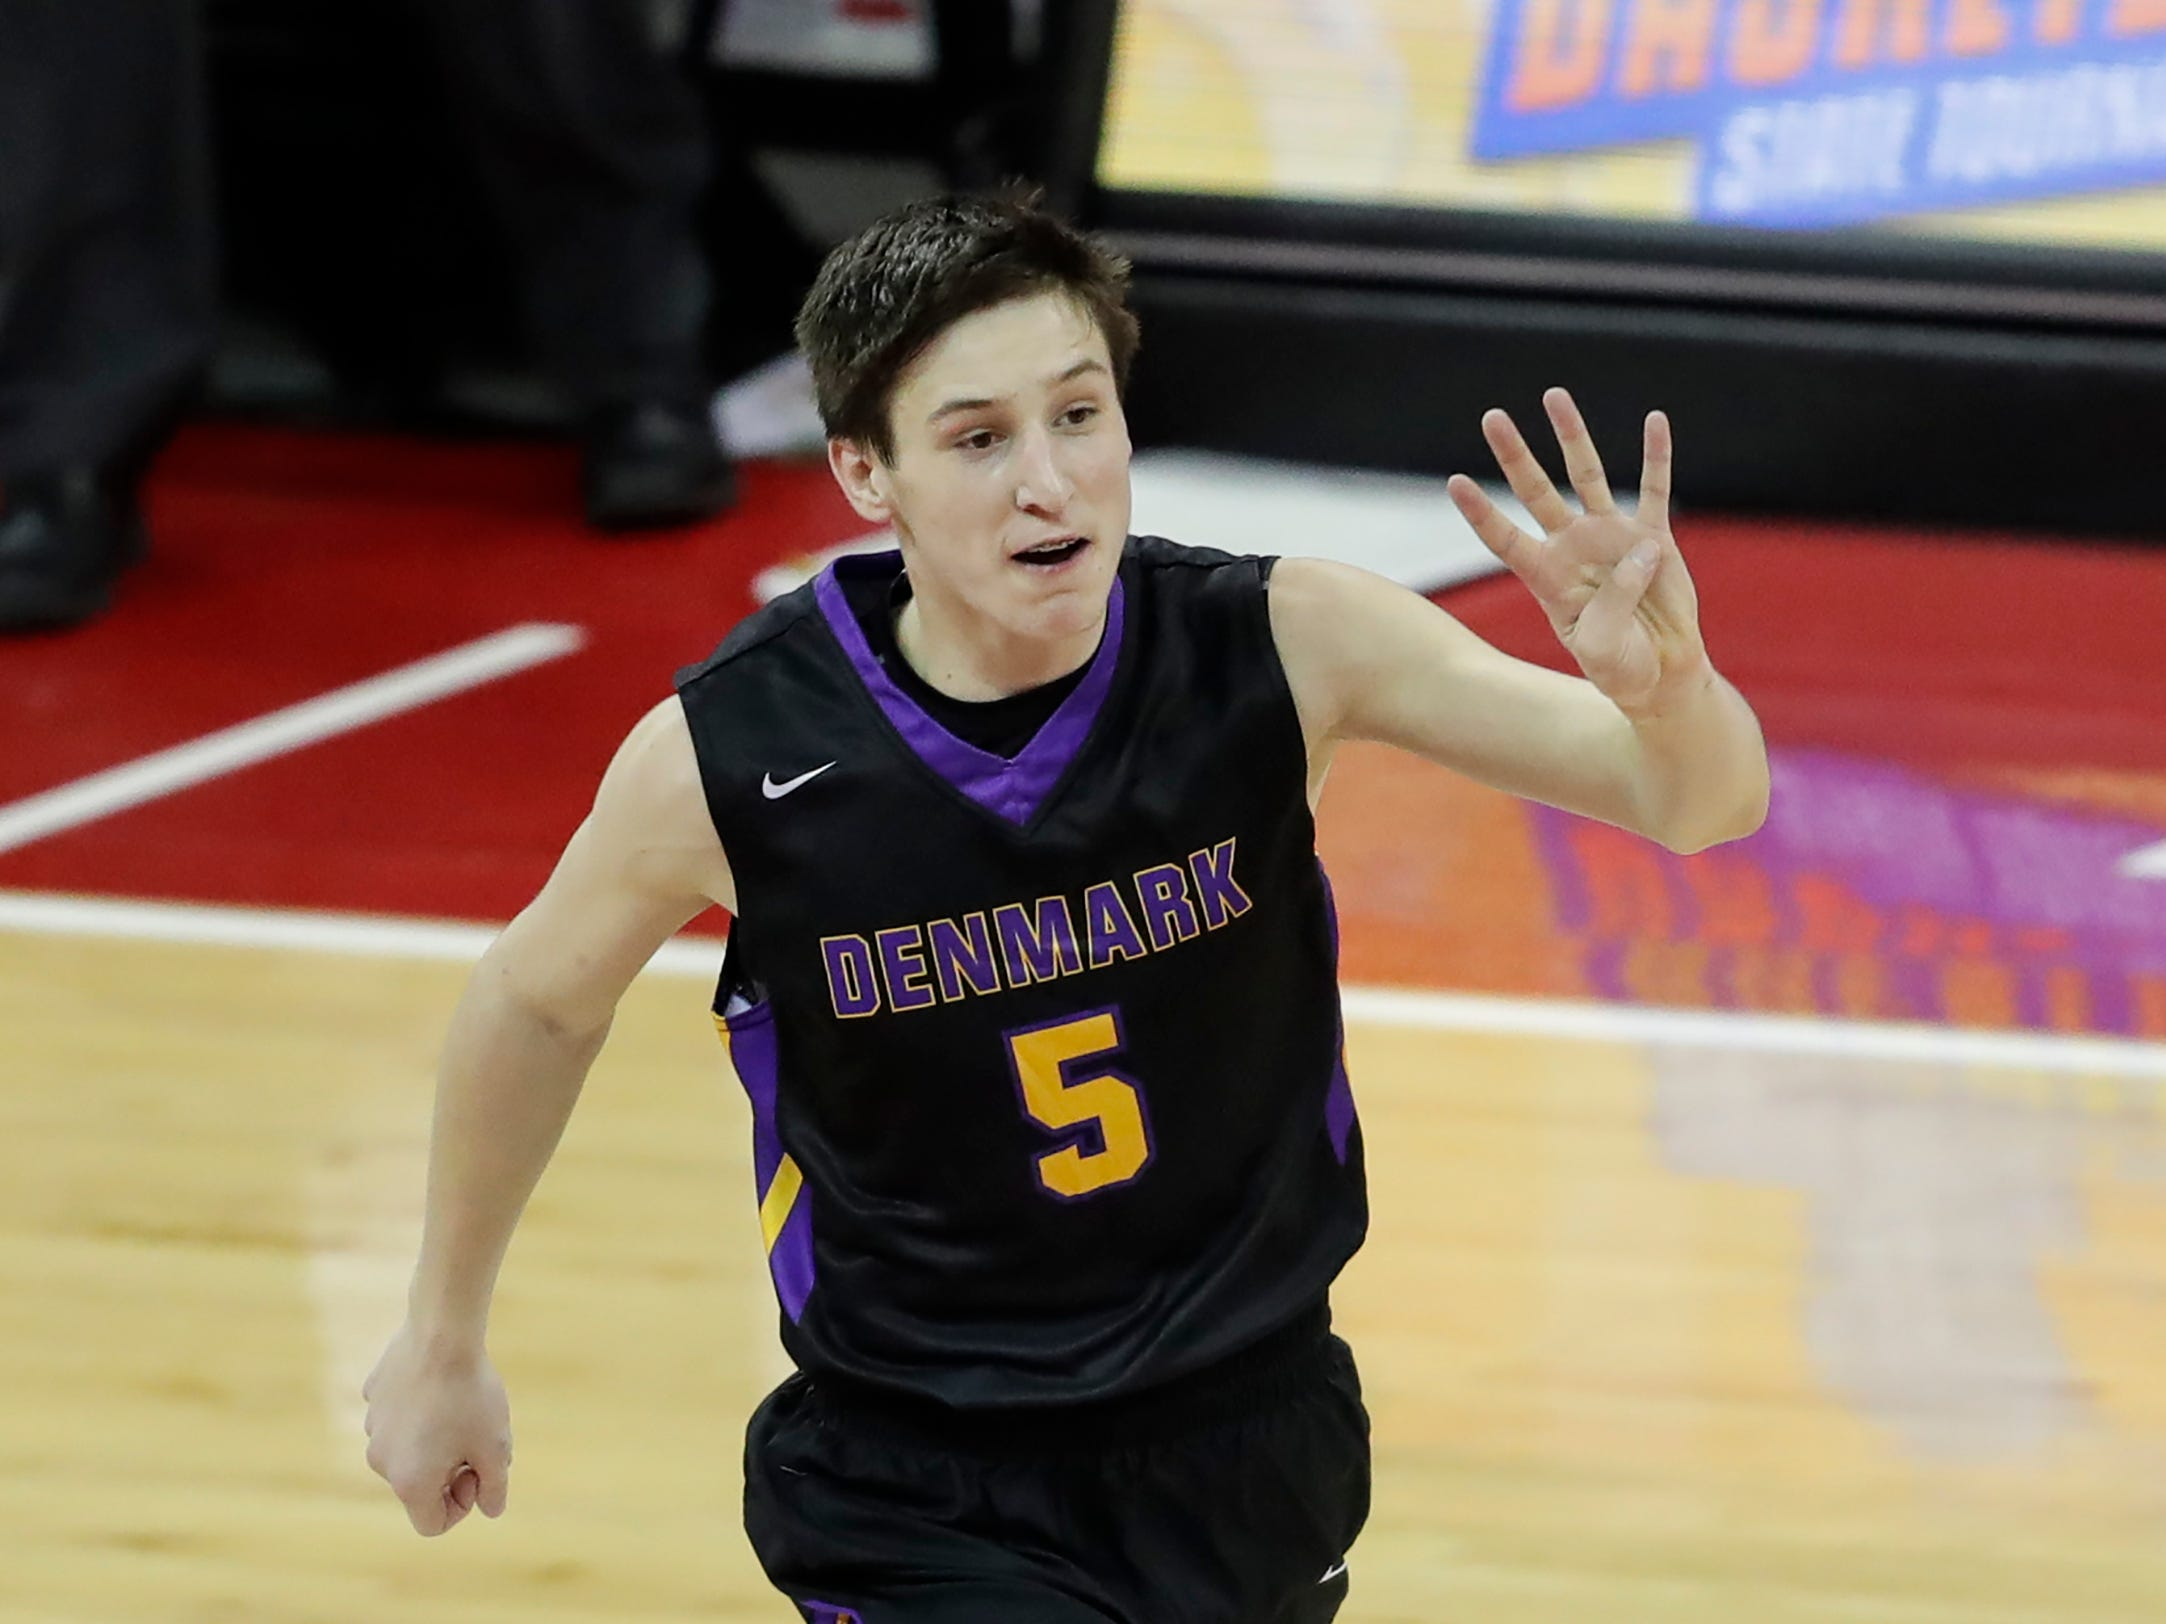 Denmark's Brennen Miller (5) reacts after sinking a three point shot against Waupun's during their WIAA Division 3 boys basketball state semifinal at the Kohl Center Thursday, March 14, 2019, in Madison, Wis.